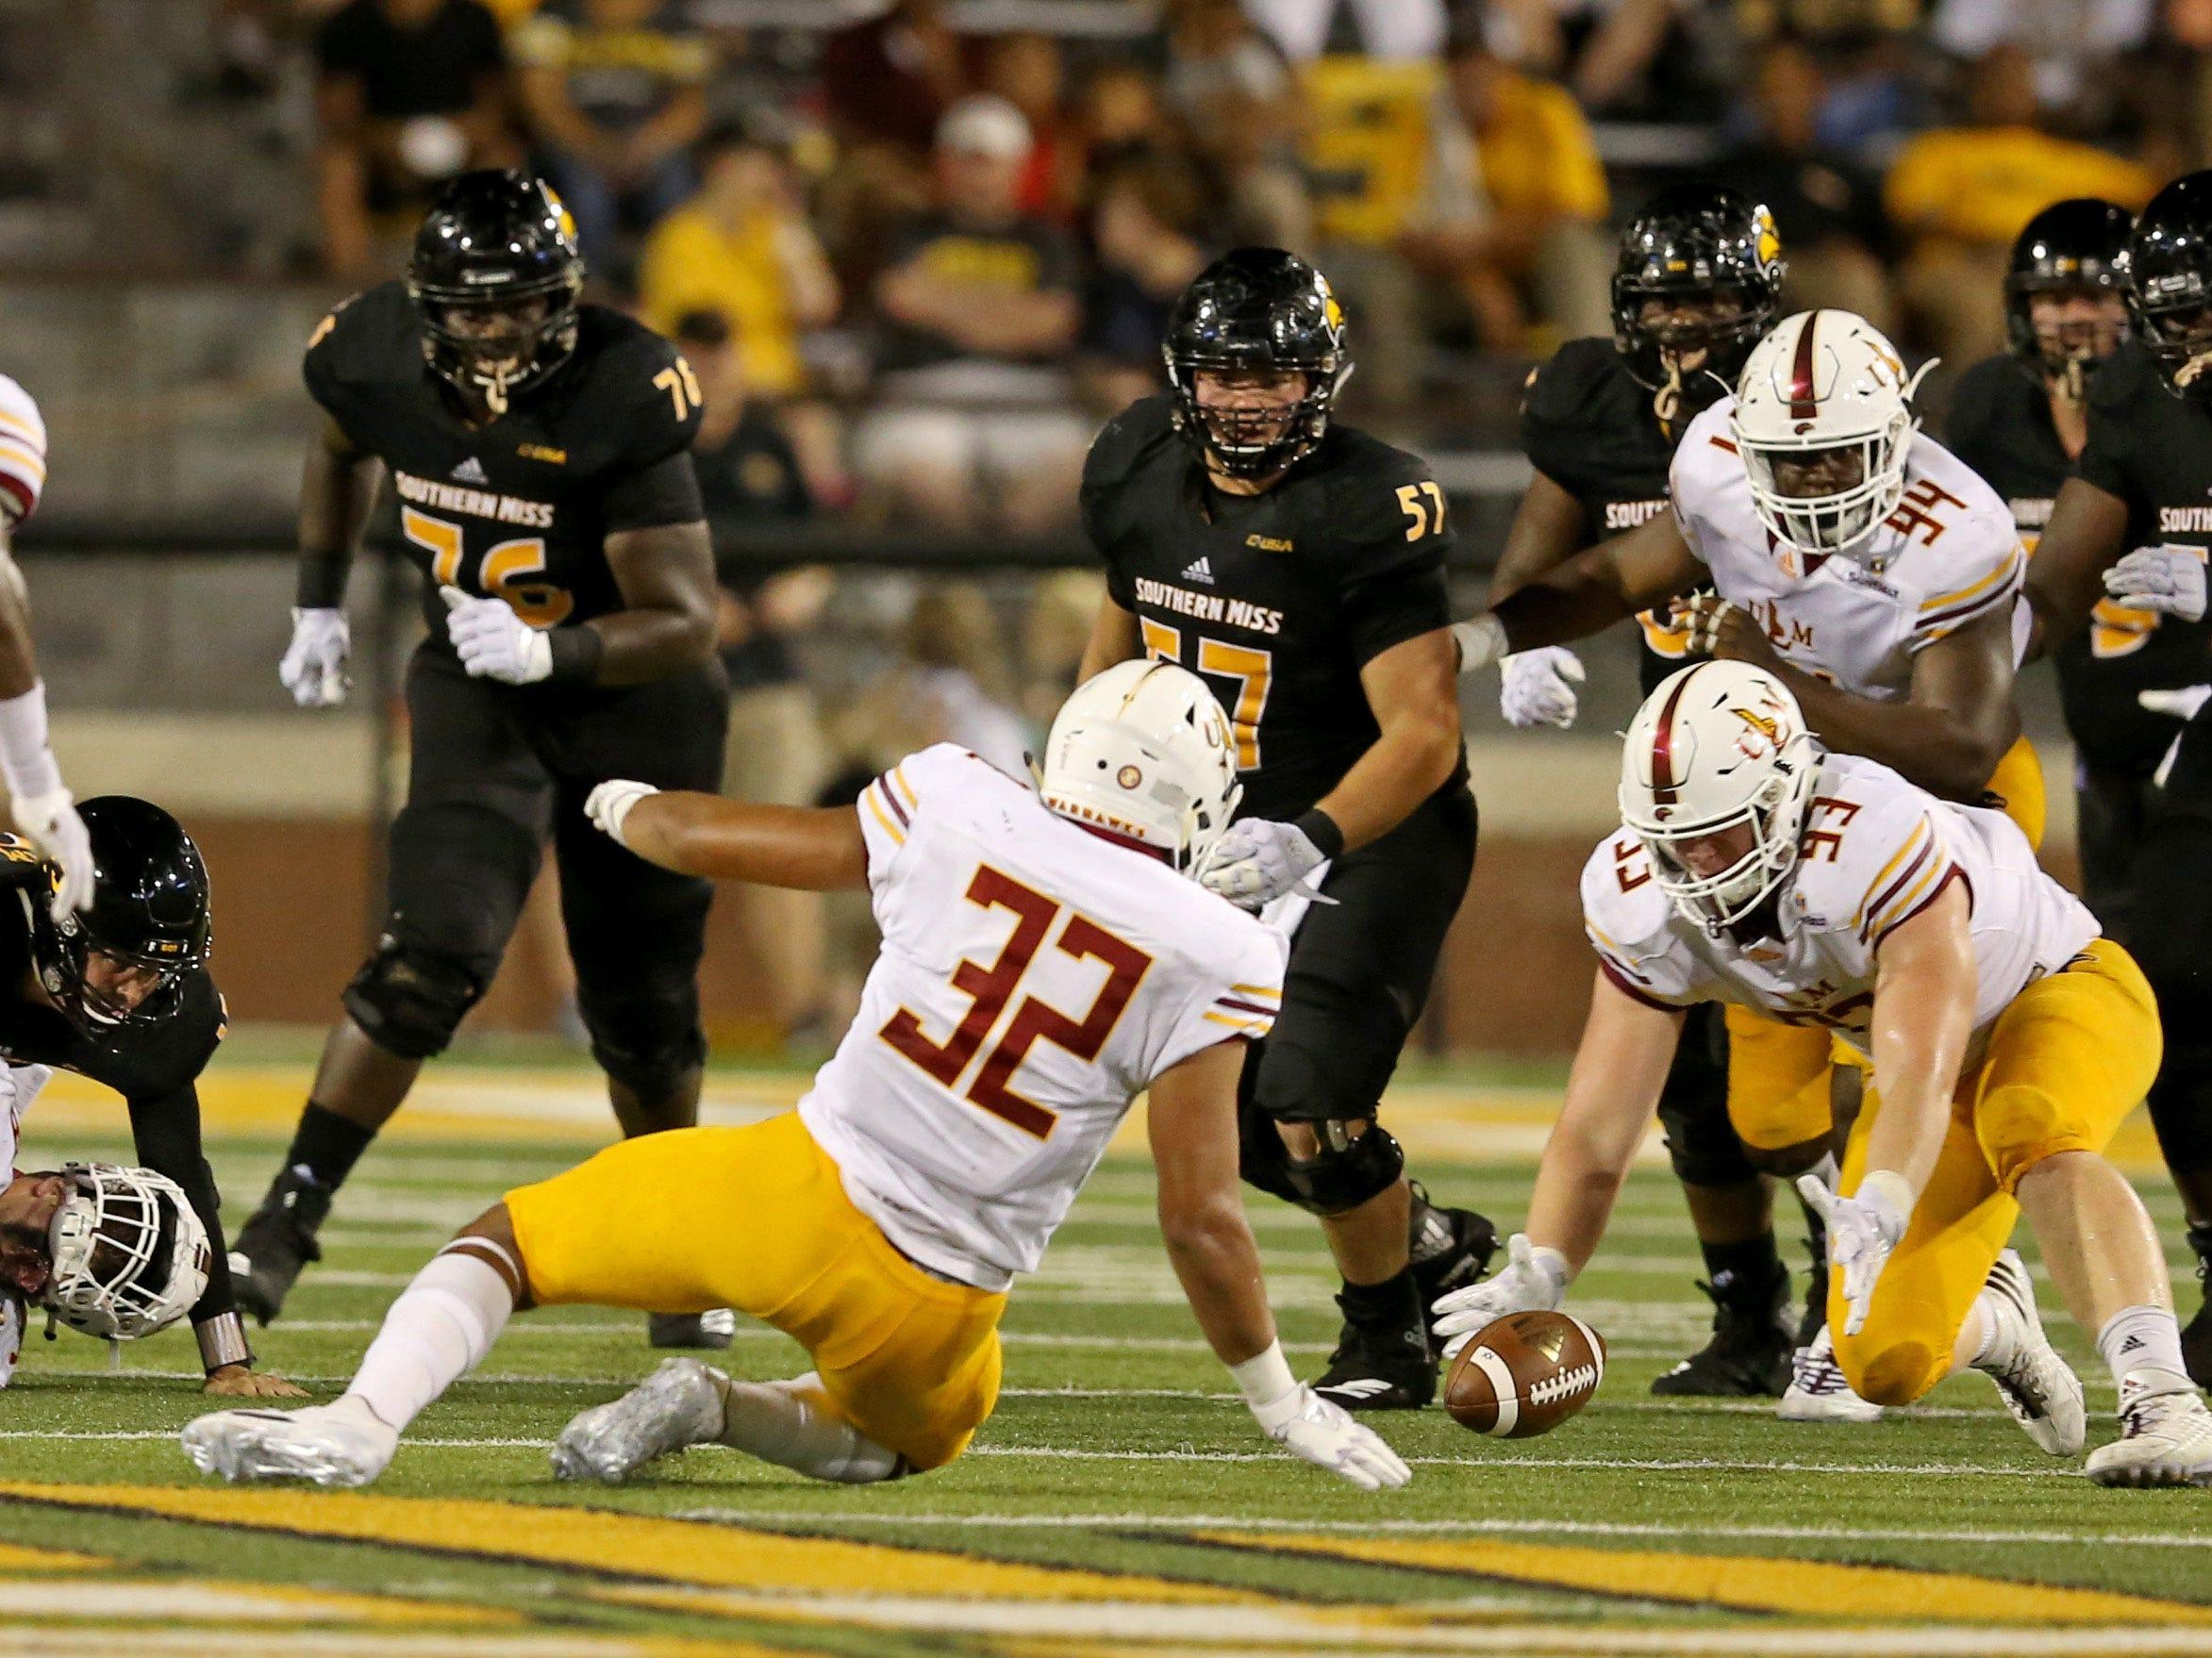 Sep 8, 2018; Hattiesburg, MS, USA; Louisiana Monroe Warhawks defensive tackle Mason Husmann (93) recovers a fumble by Southern Miss Golden Eagles quarterback Jack Abraham (15) in the third quarter at M. M. Roberts Stadium. The Louisiana Monroe Warhawks won, 21-20. Mandatory Credit: Chuck Cook-USA TODAY Sports